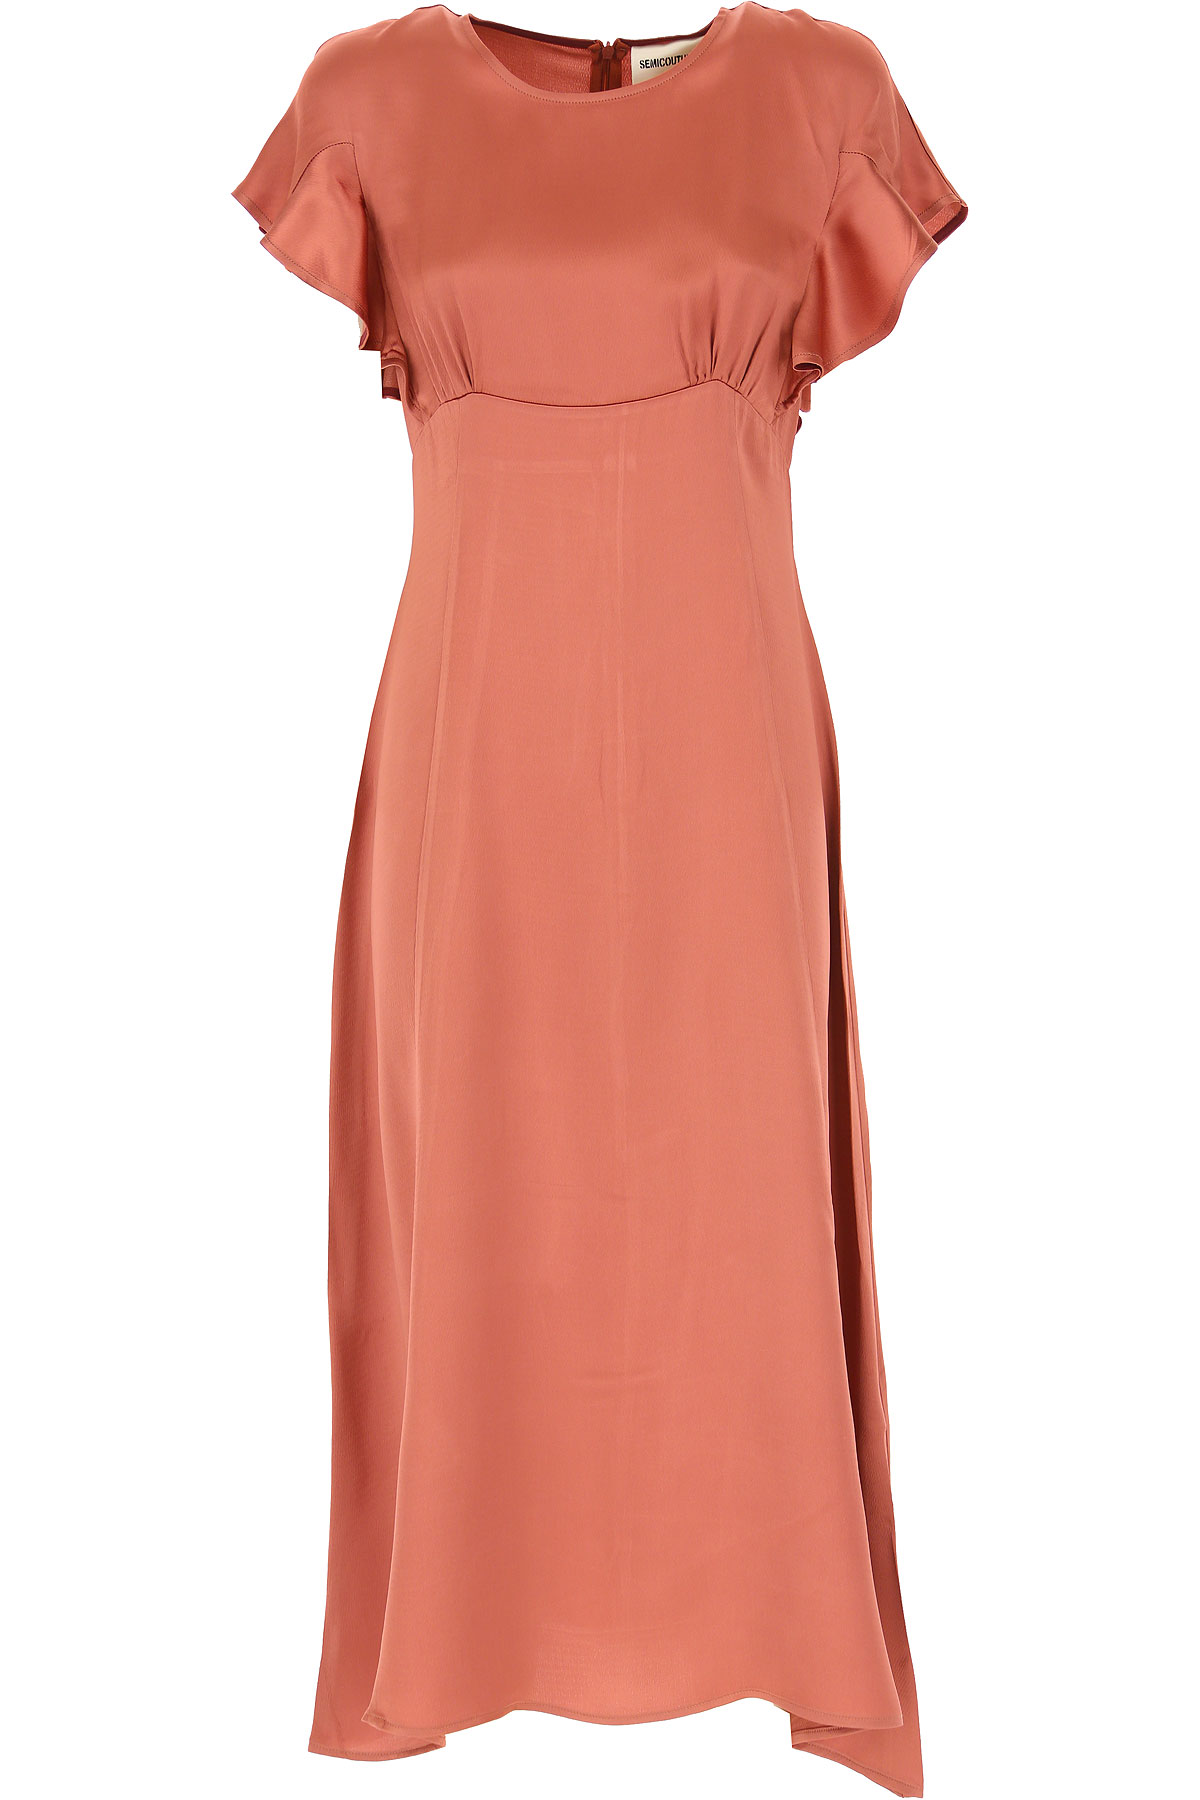 Semicouture Dress for Women, Evening Cocktail Party On Sale, Cammeo, viscosa, 2019, 4 6 8